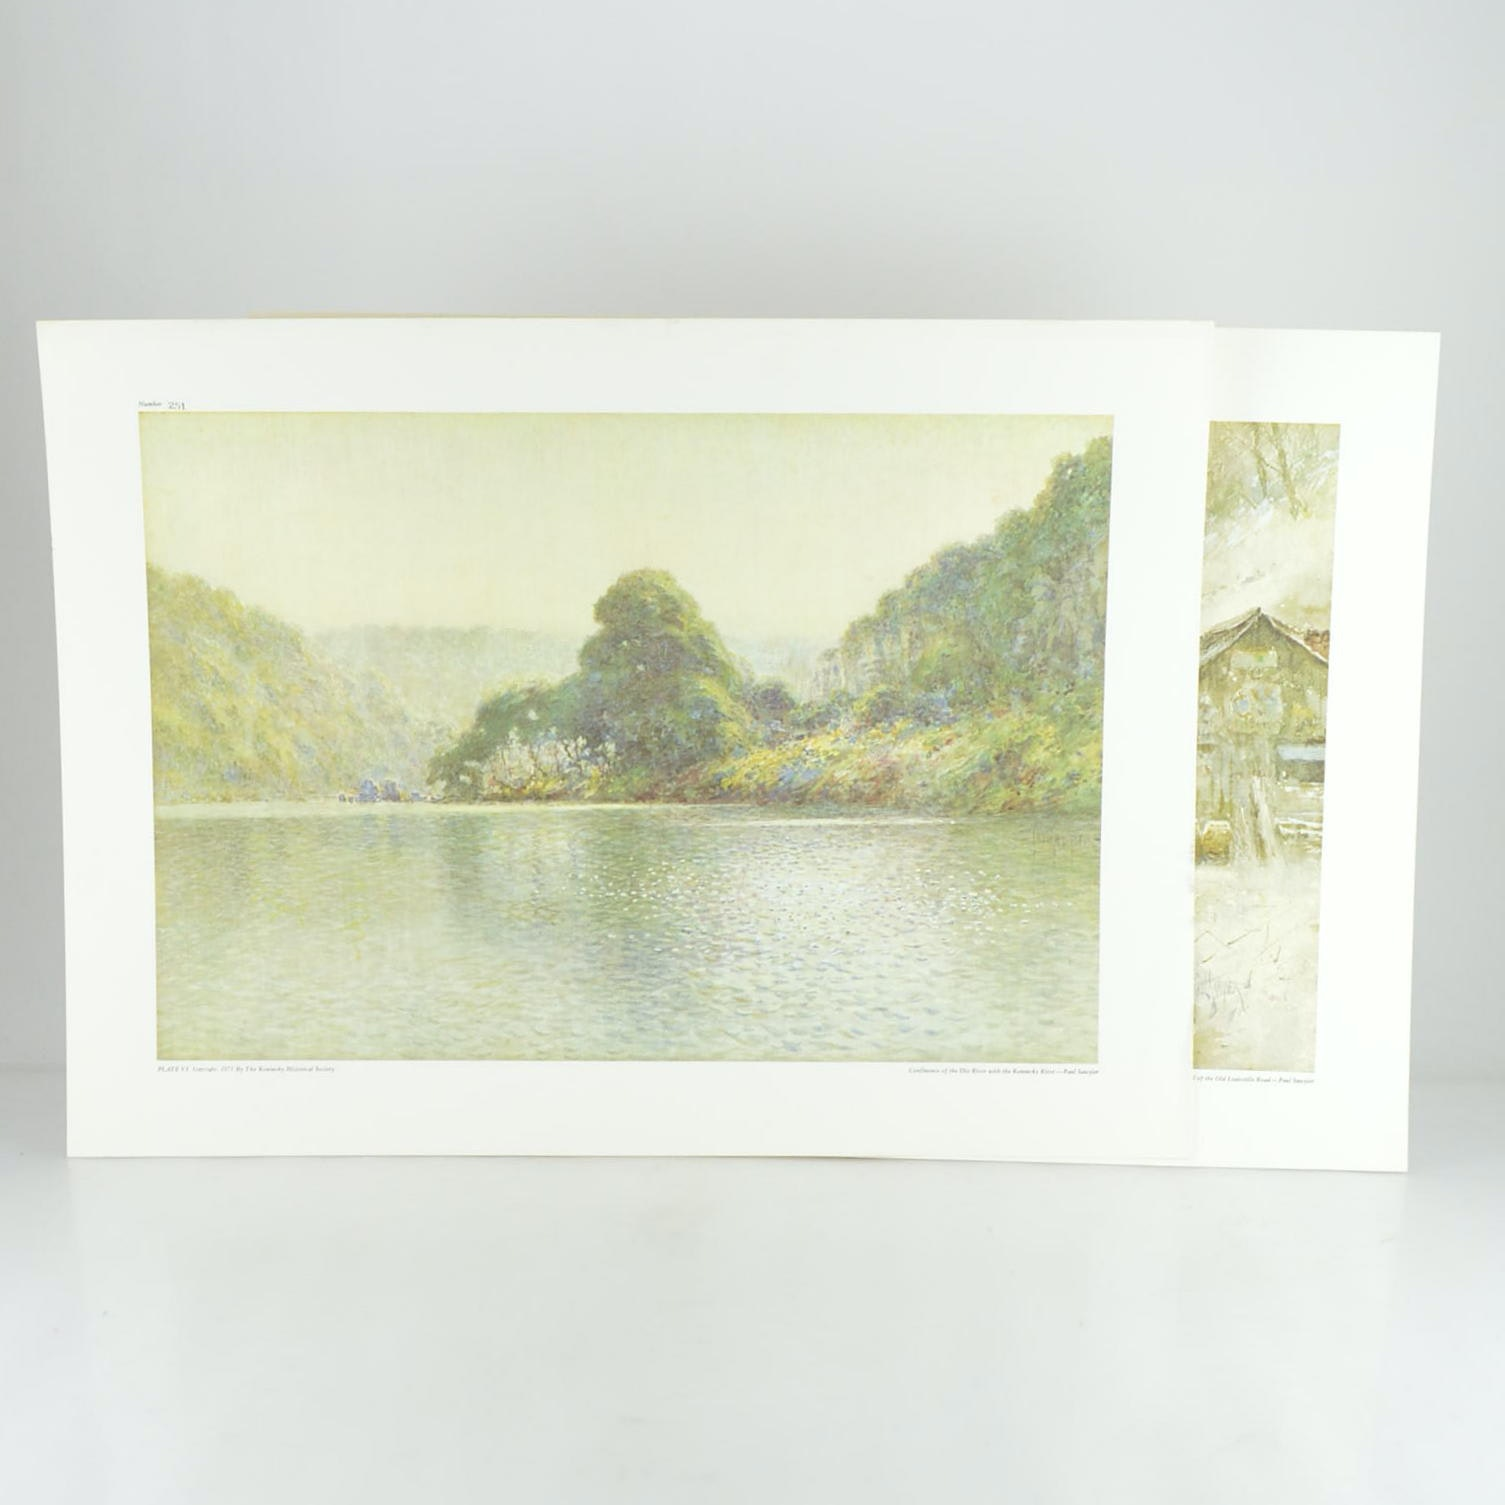 """Paul Sawyier Prints """"Confluence of the Dix River with the Kentucky River"""" and """"Up the Hill of the Old Louisville Road"""""""